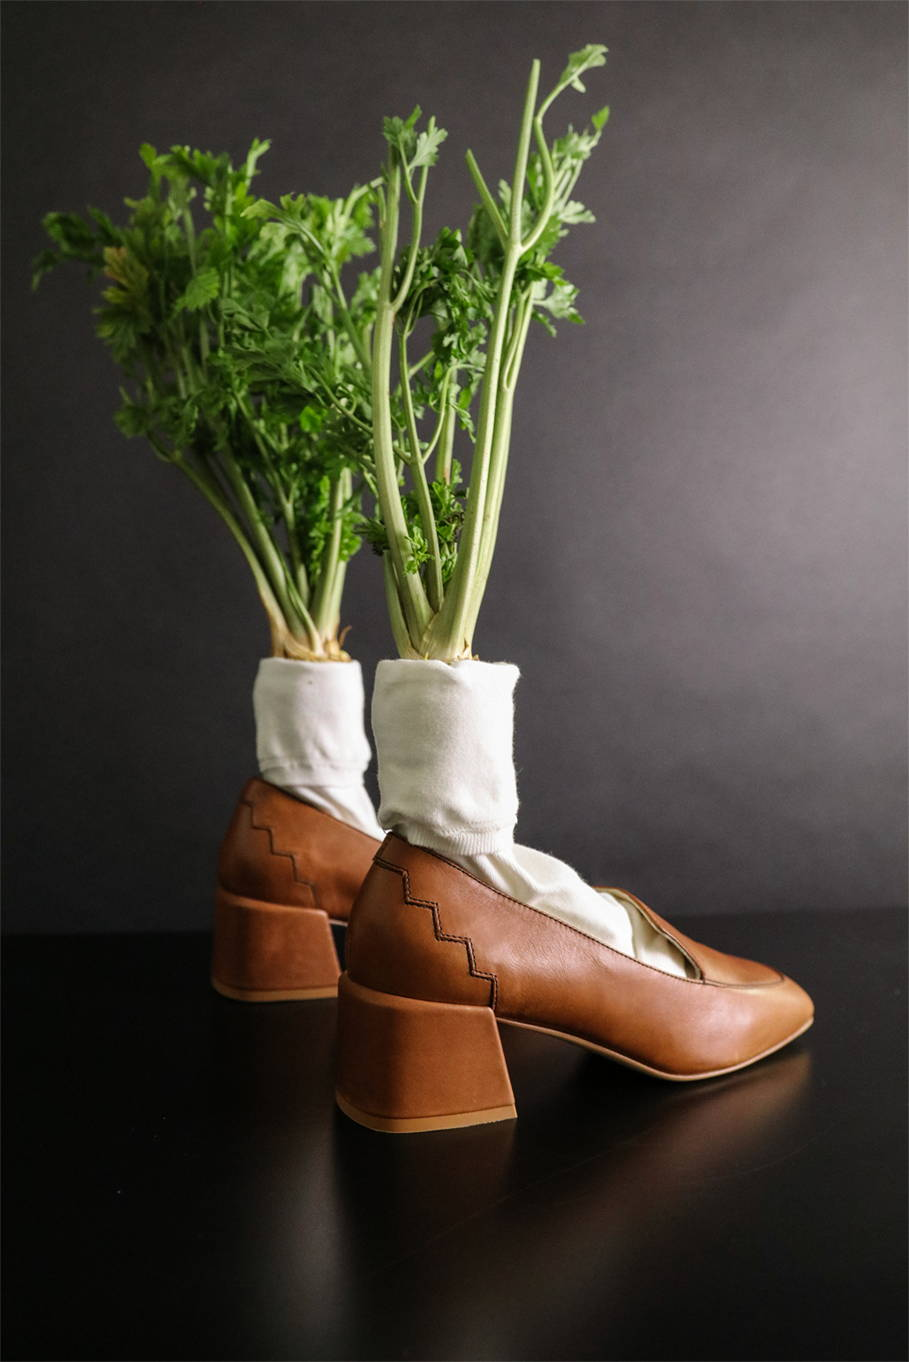 Marlene mid-heel loafer made from vegetable tanned responsible leather styled with parsnips in socks